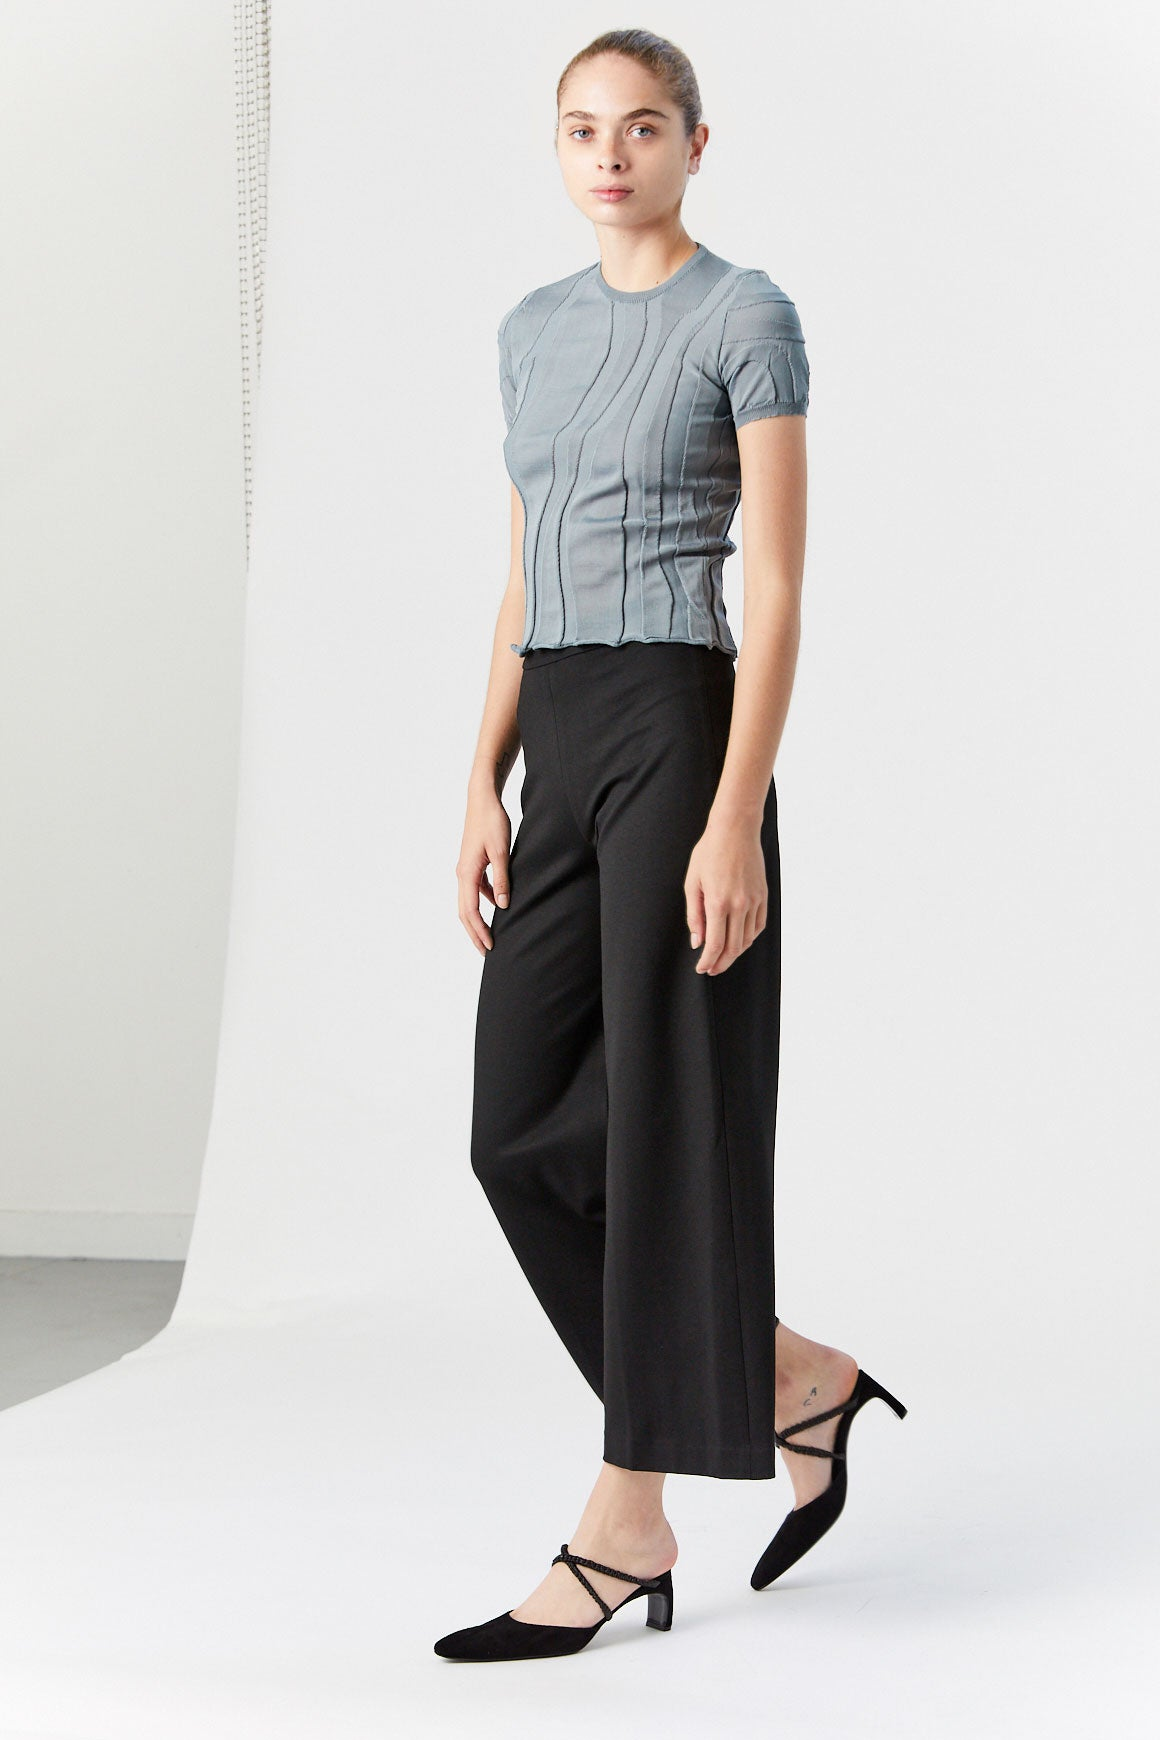 ROSETTA GETTY - Pull On Straight Trouser, Black